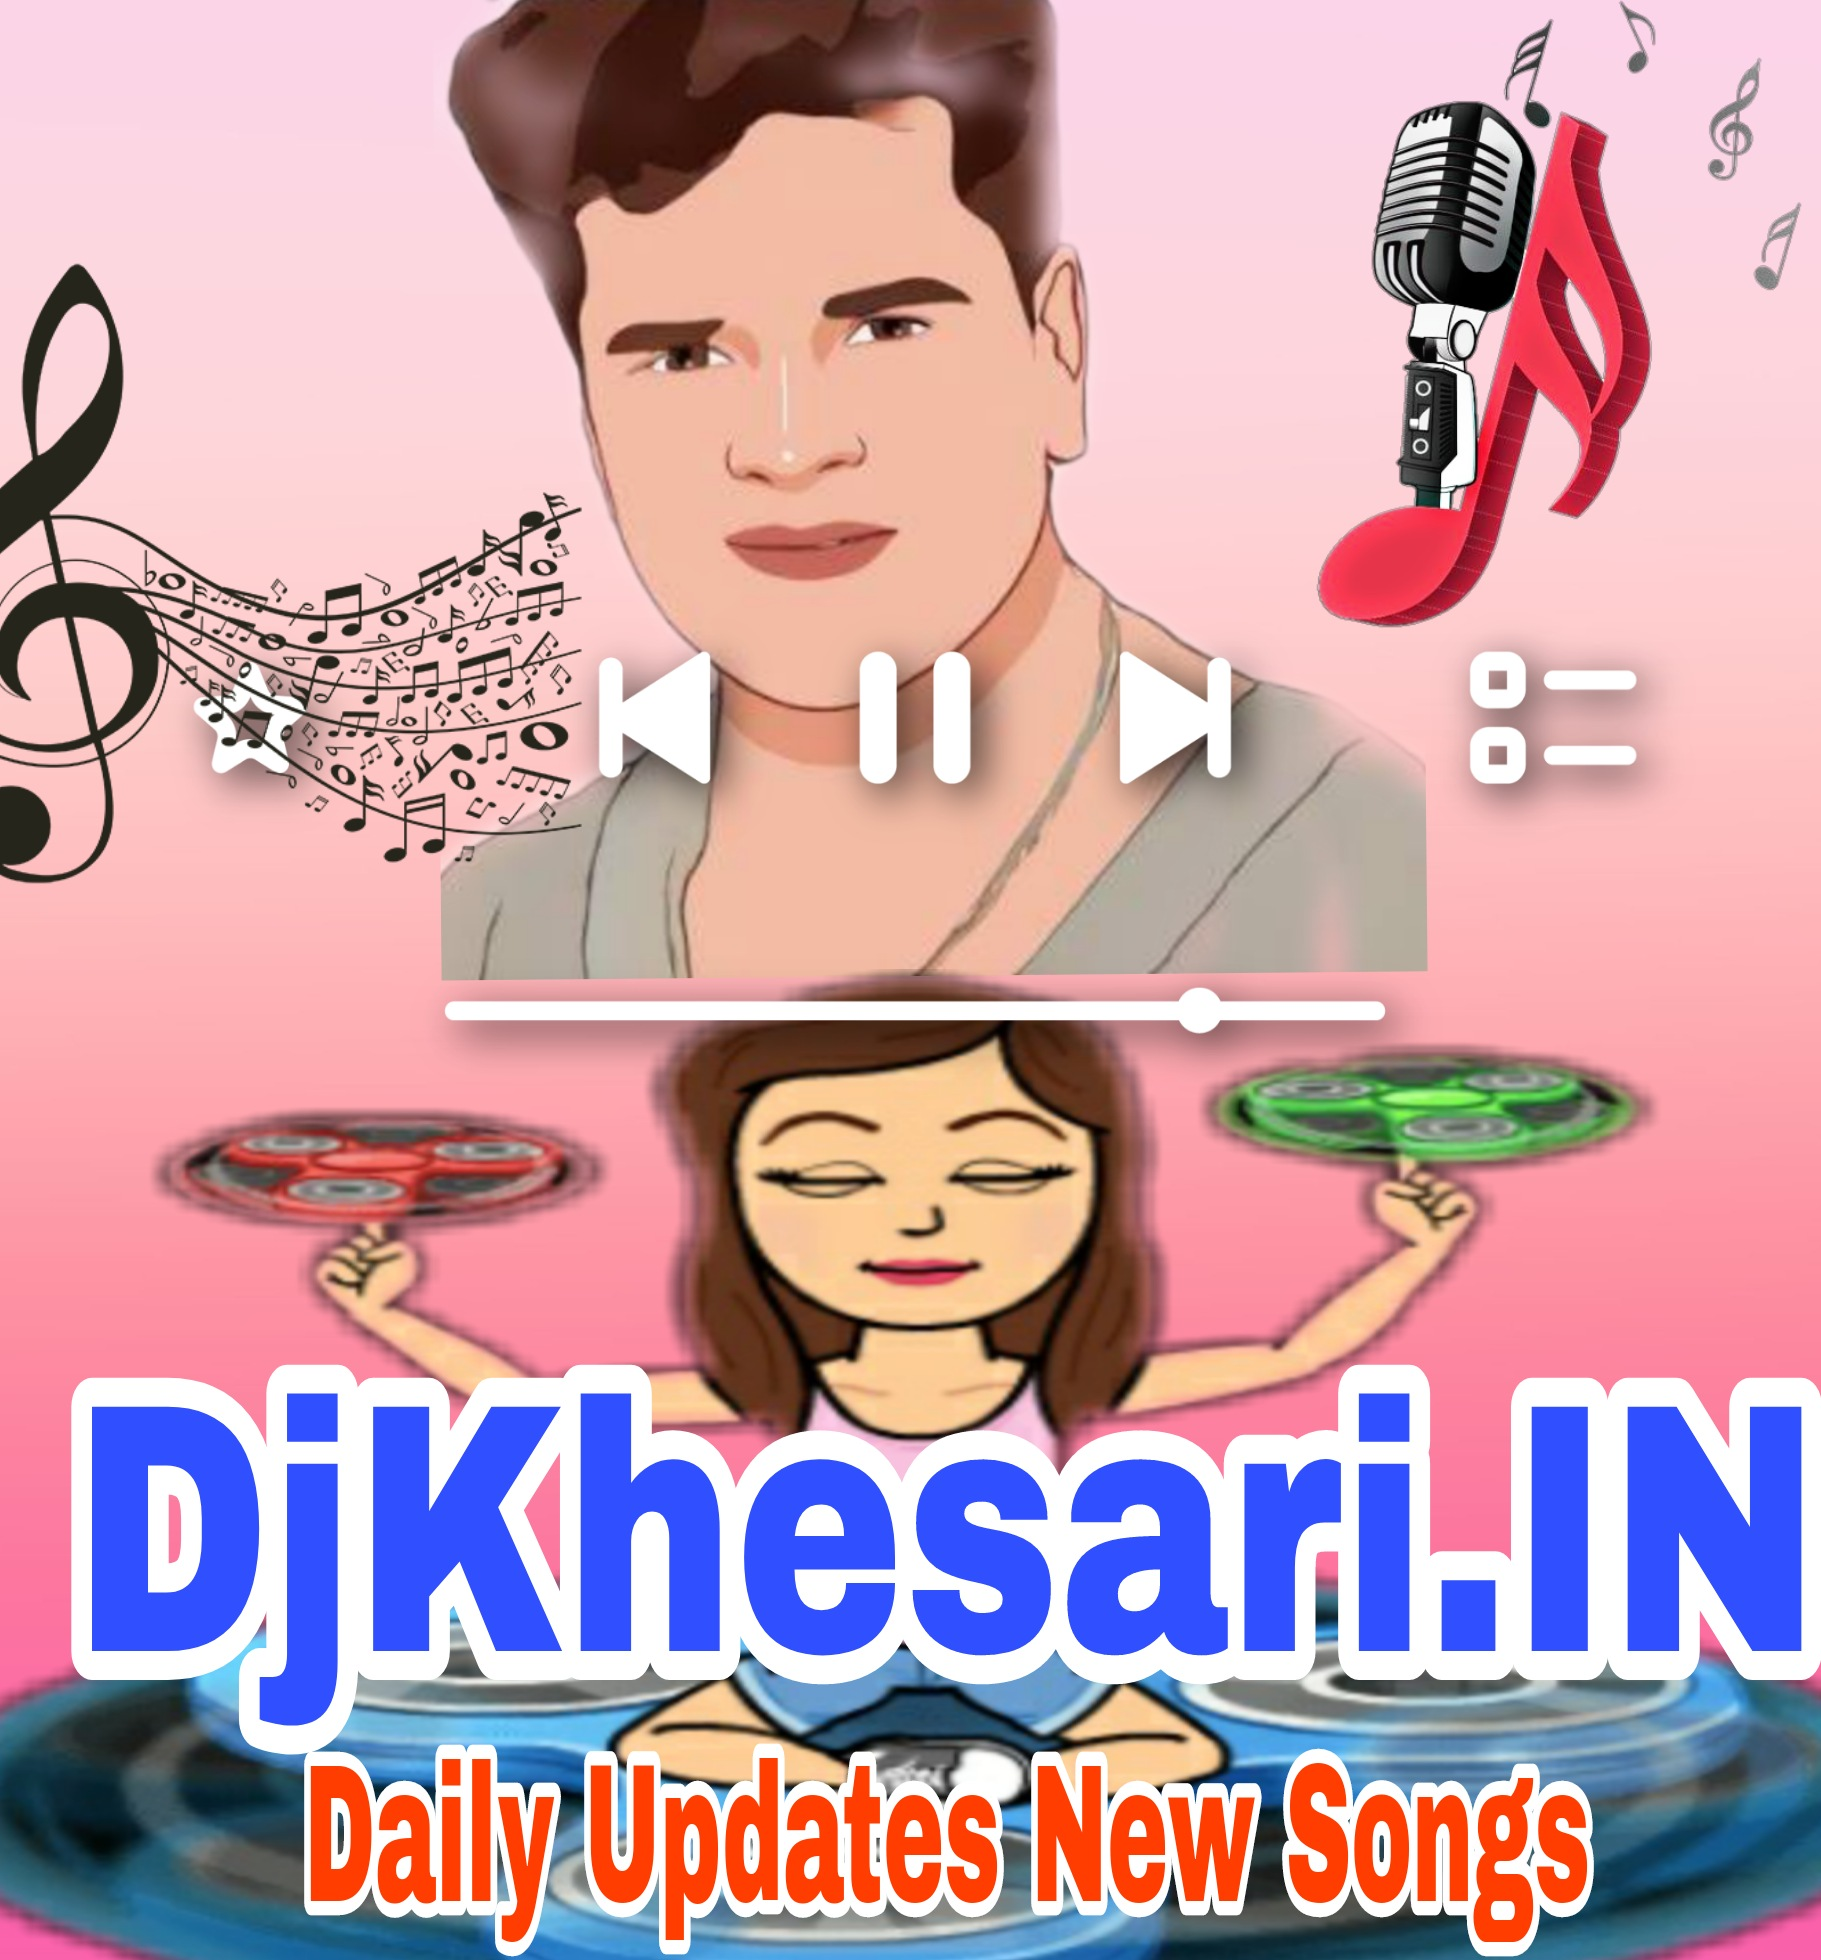 Navratri Vibration Comptetion 2019  JBL HORN BOUNCE  MIX Mix Dj Neeraj Gorakhpur Vibration Mix  DJKhesari.IN